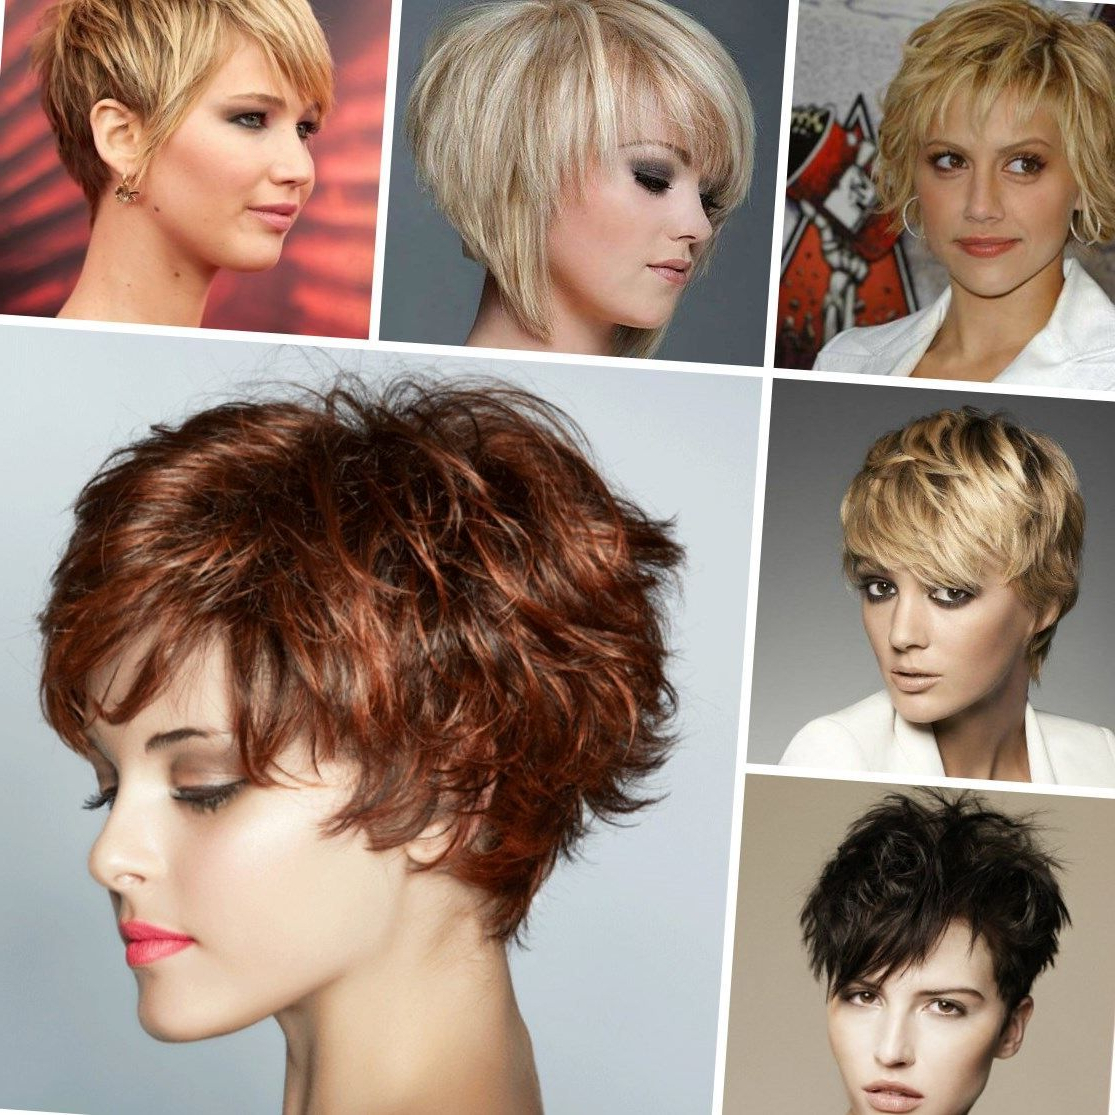 20 Short Sassy Haircuts Short Hairstyles 2017 2018 Most Short For Short Haircuts For Petite Women (View 7 of 25)